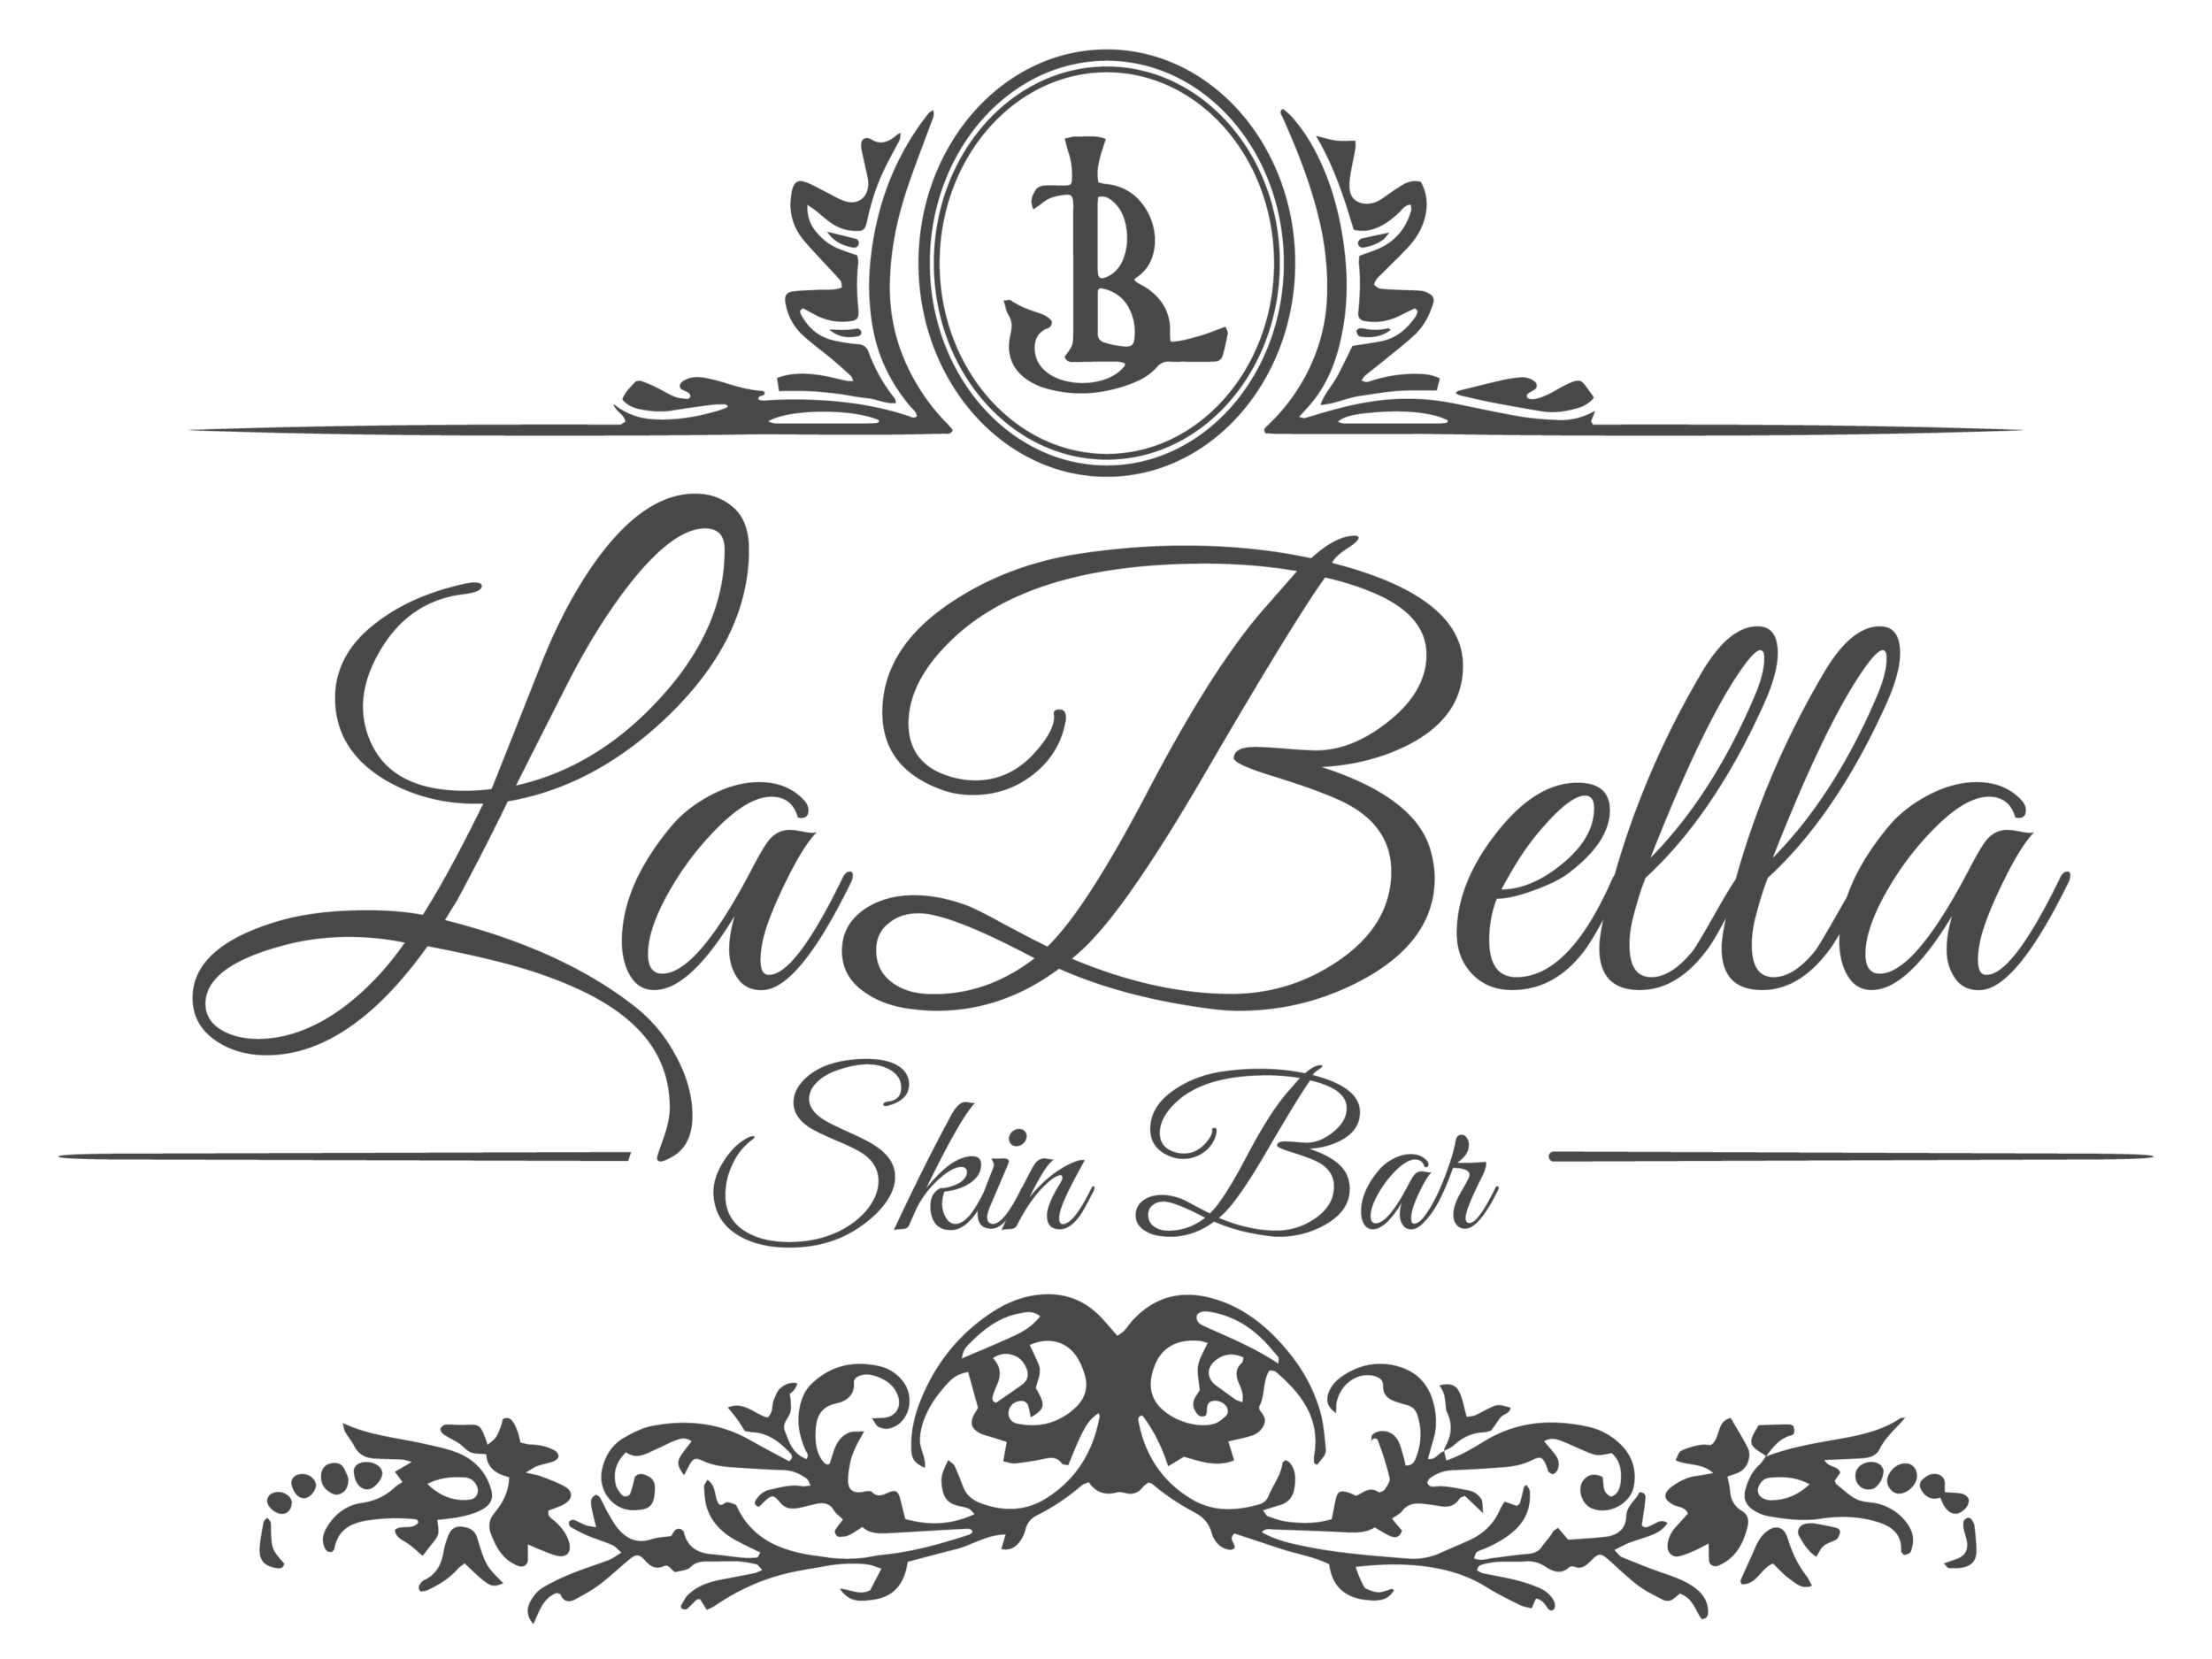 La Bella Skin Bar